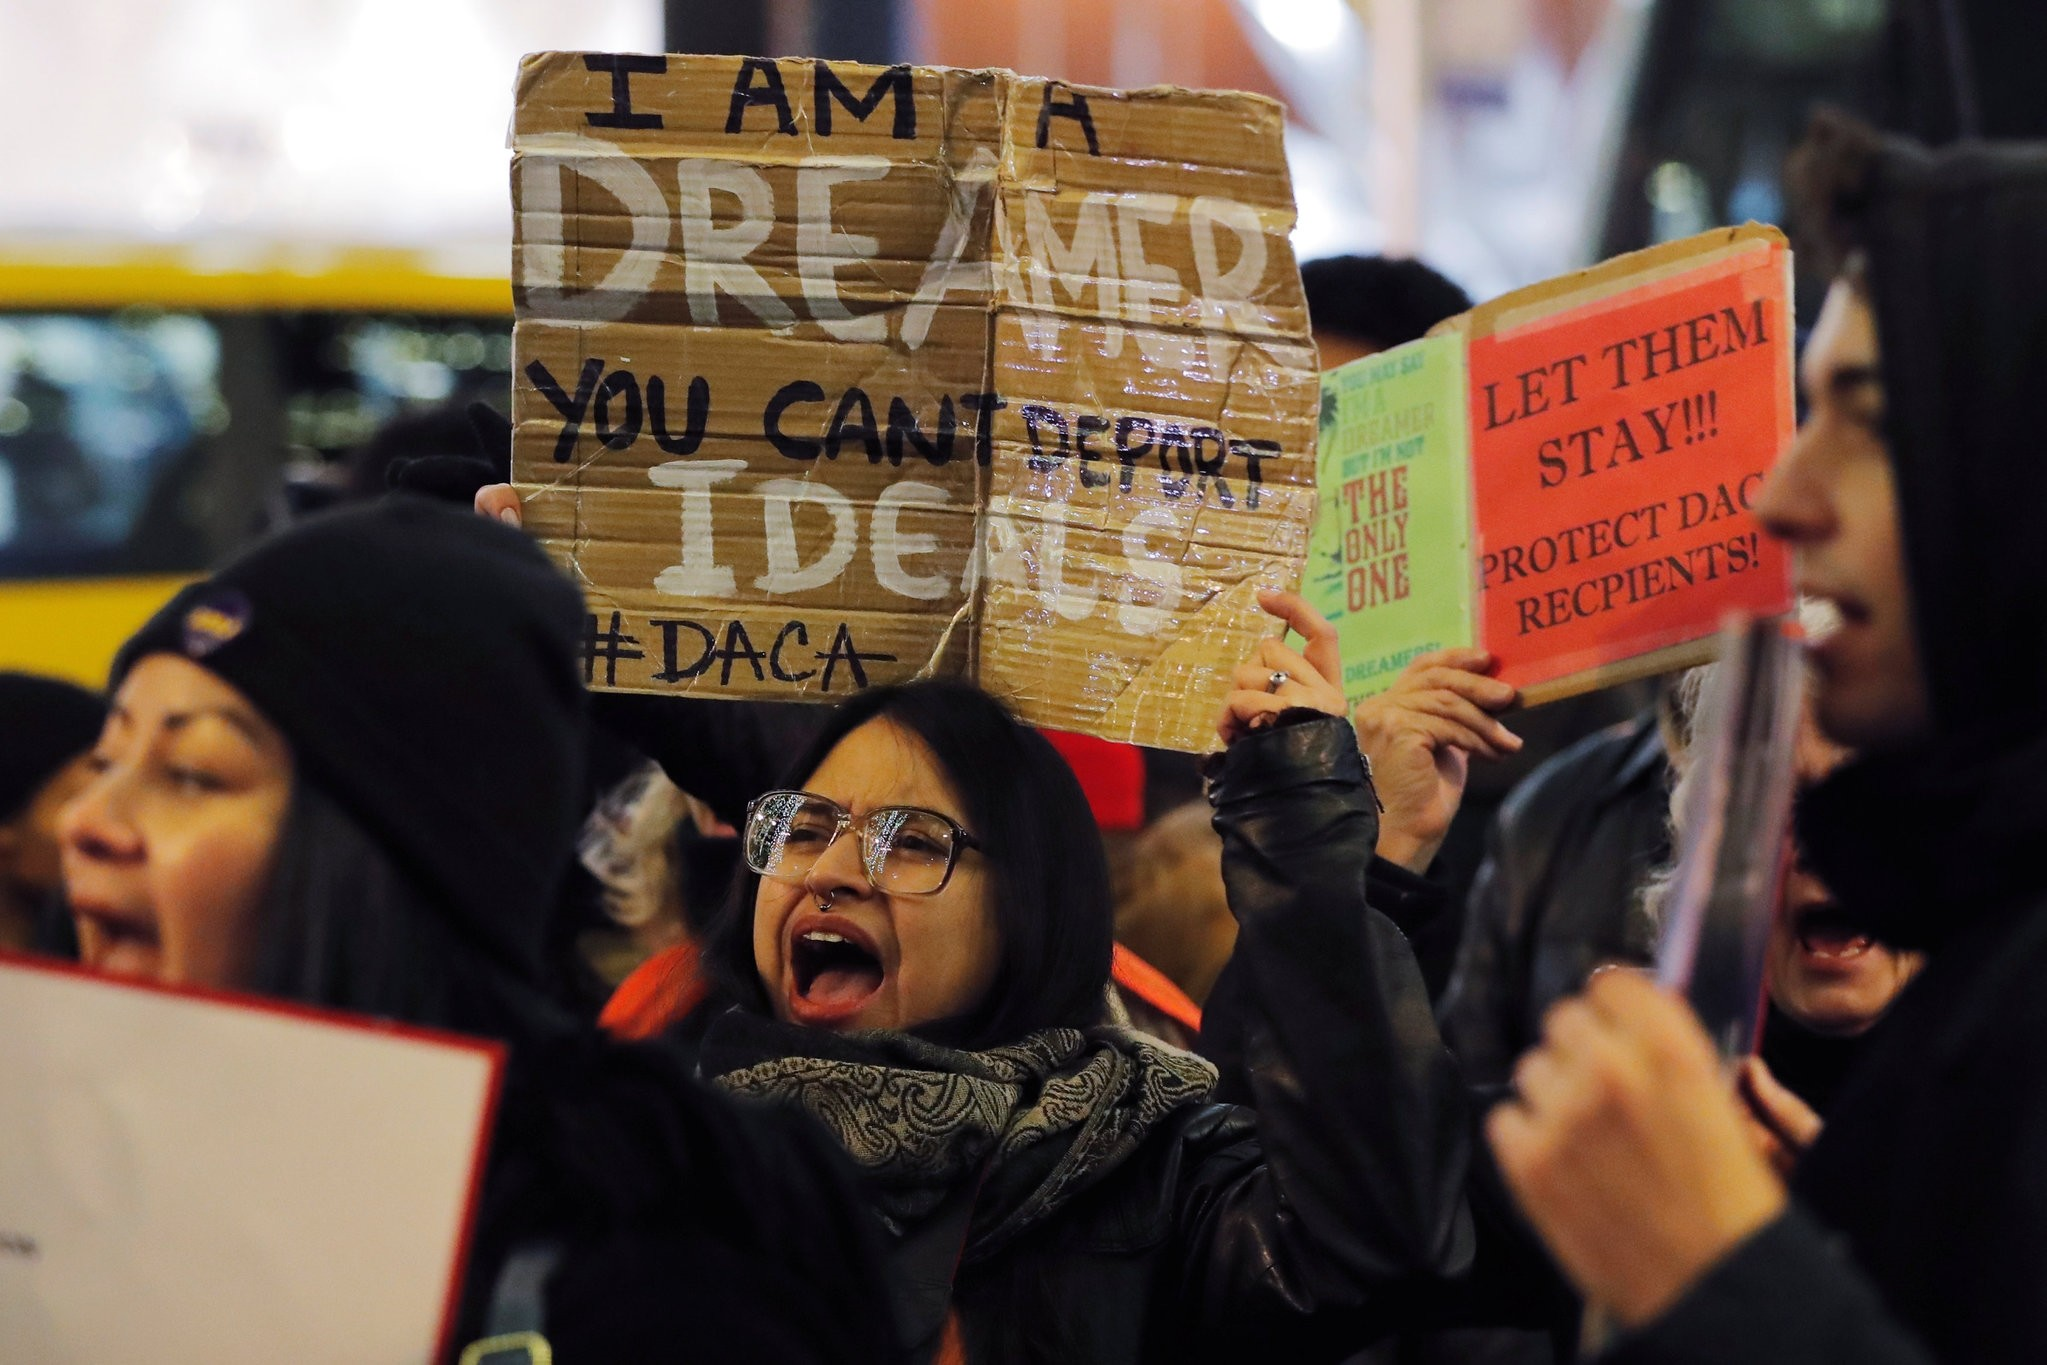 Deferred Action for Childhood Arrivals (DACA) recipient Gloria Mendoza participates in a demonstration in support of ,clean, legislation in New York, U.S., January 10, 2018. Picture taken January 10, 2018. (REUTERS Photo)